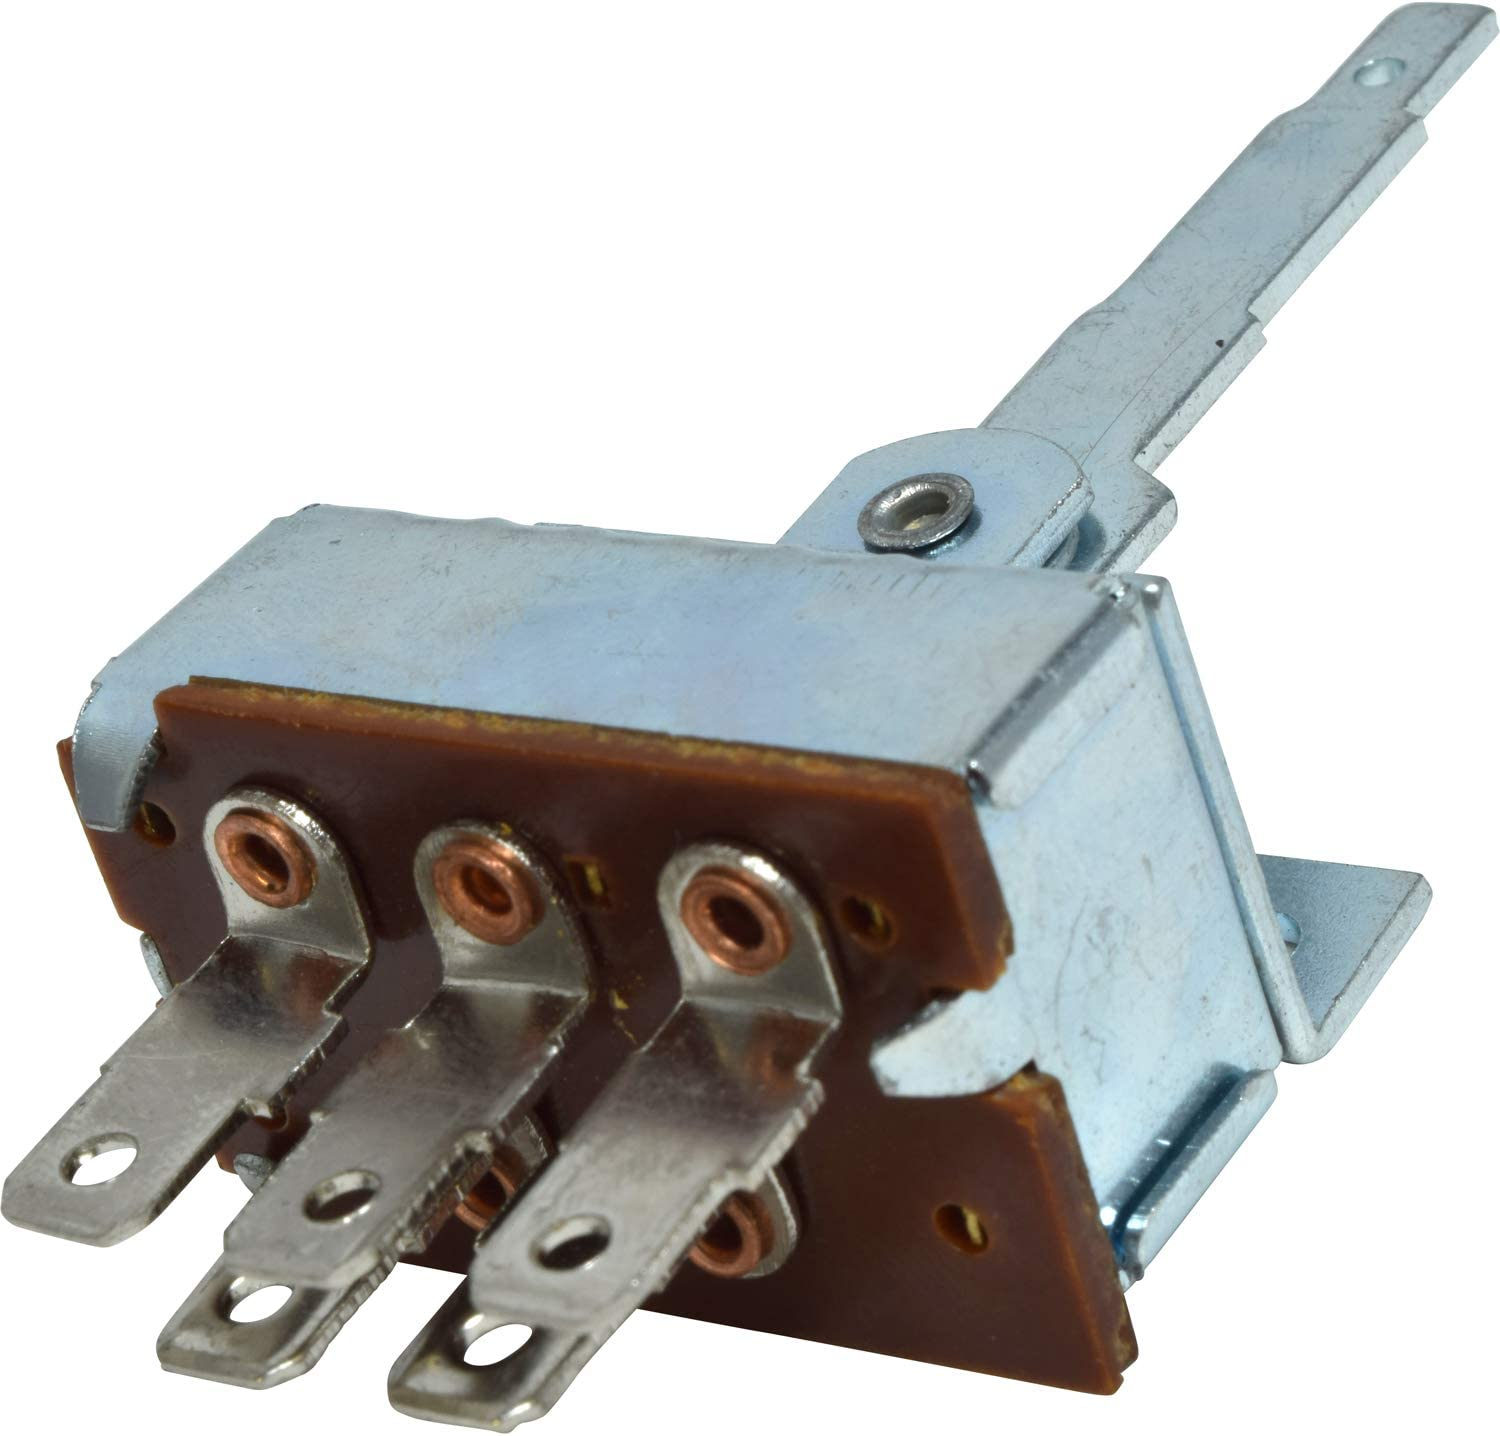 Store New HVAC Blower 1740007 Switch 2021 new Control